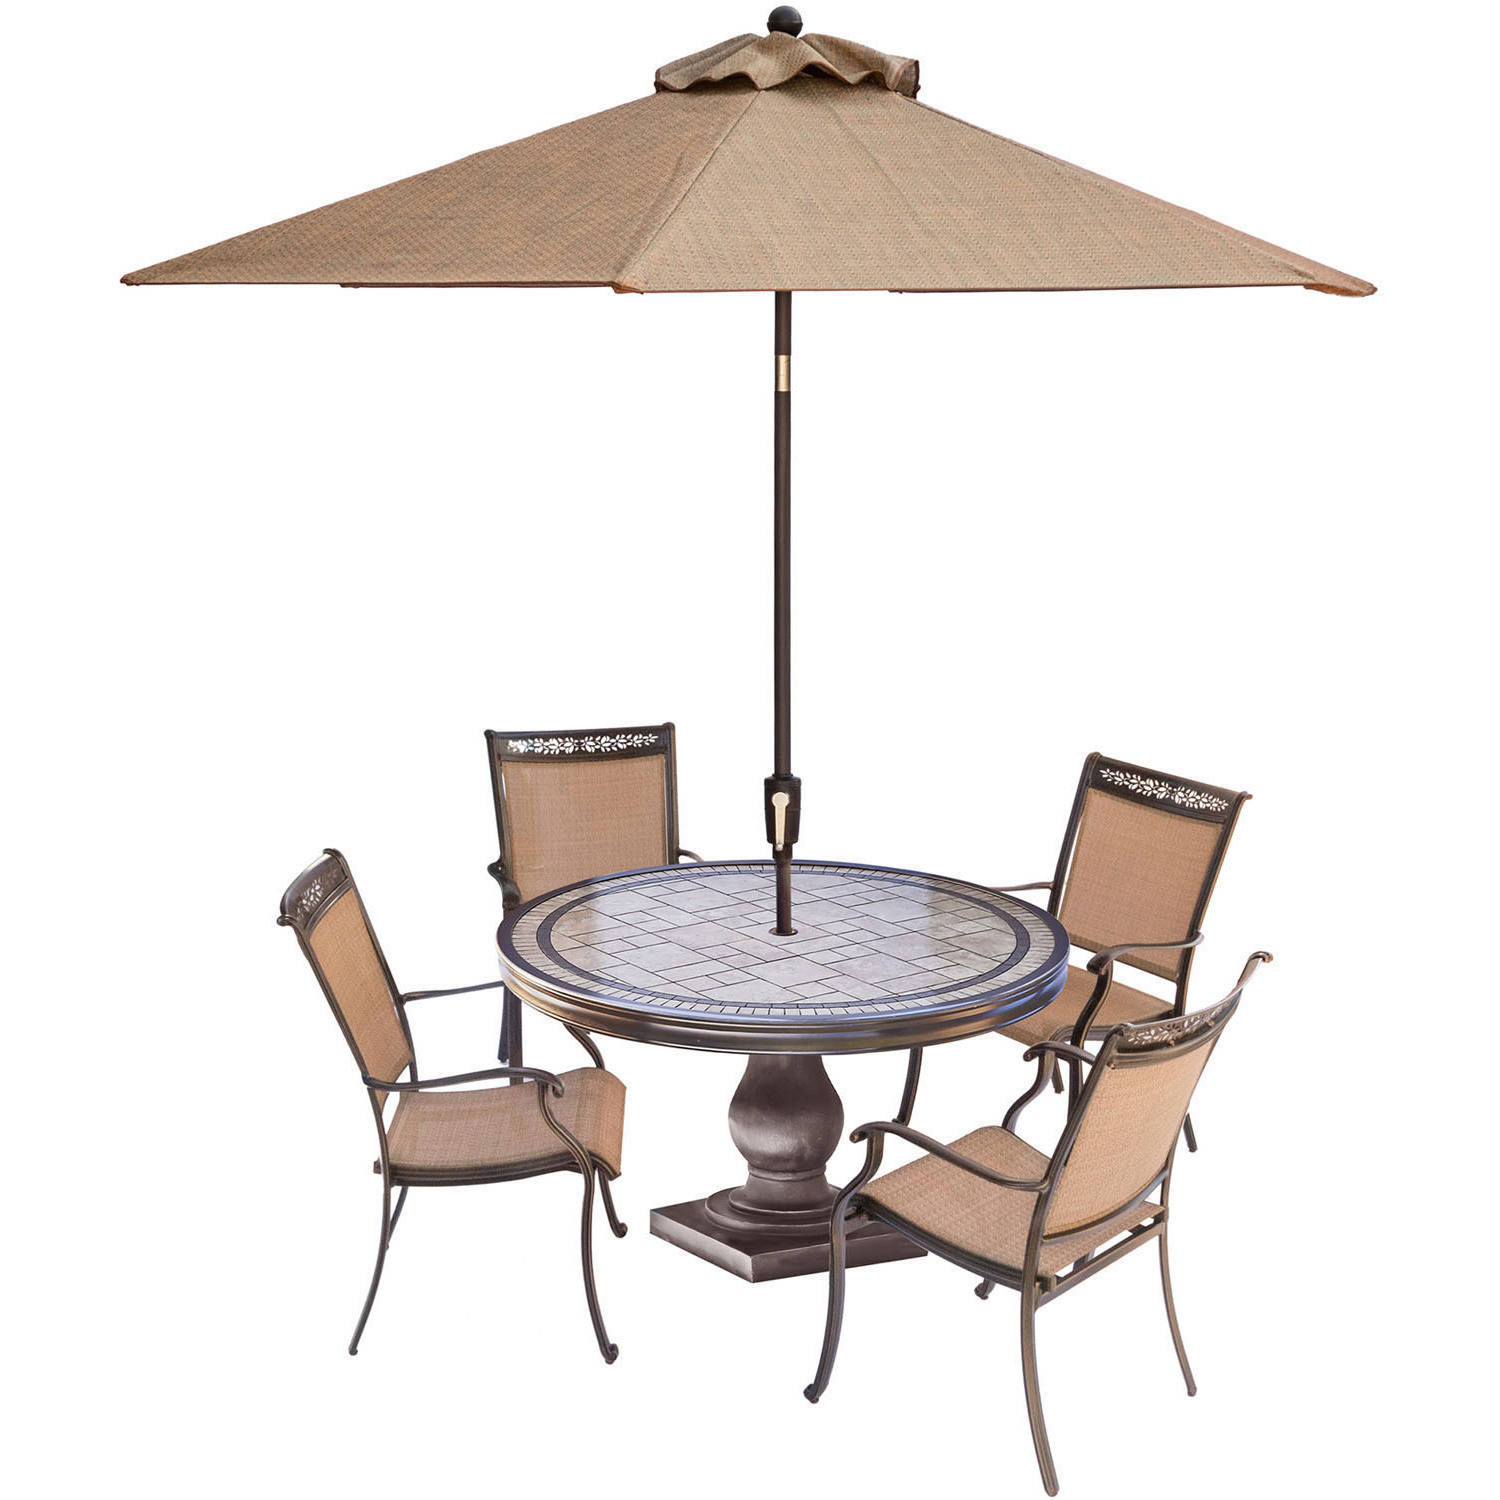 Hanover Fontana 5-Piece Outdoor Dining Room Set with Stationary Chairs, Tile-Top Table and... by Hanover